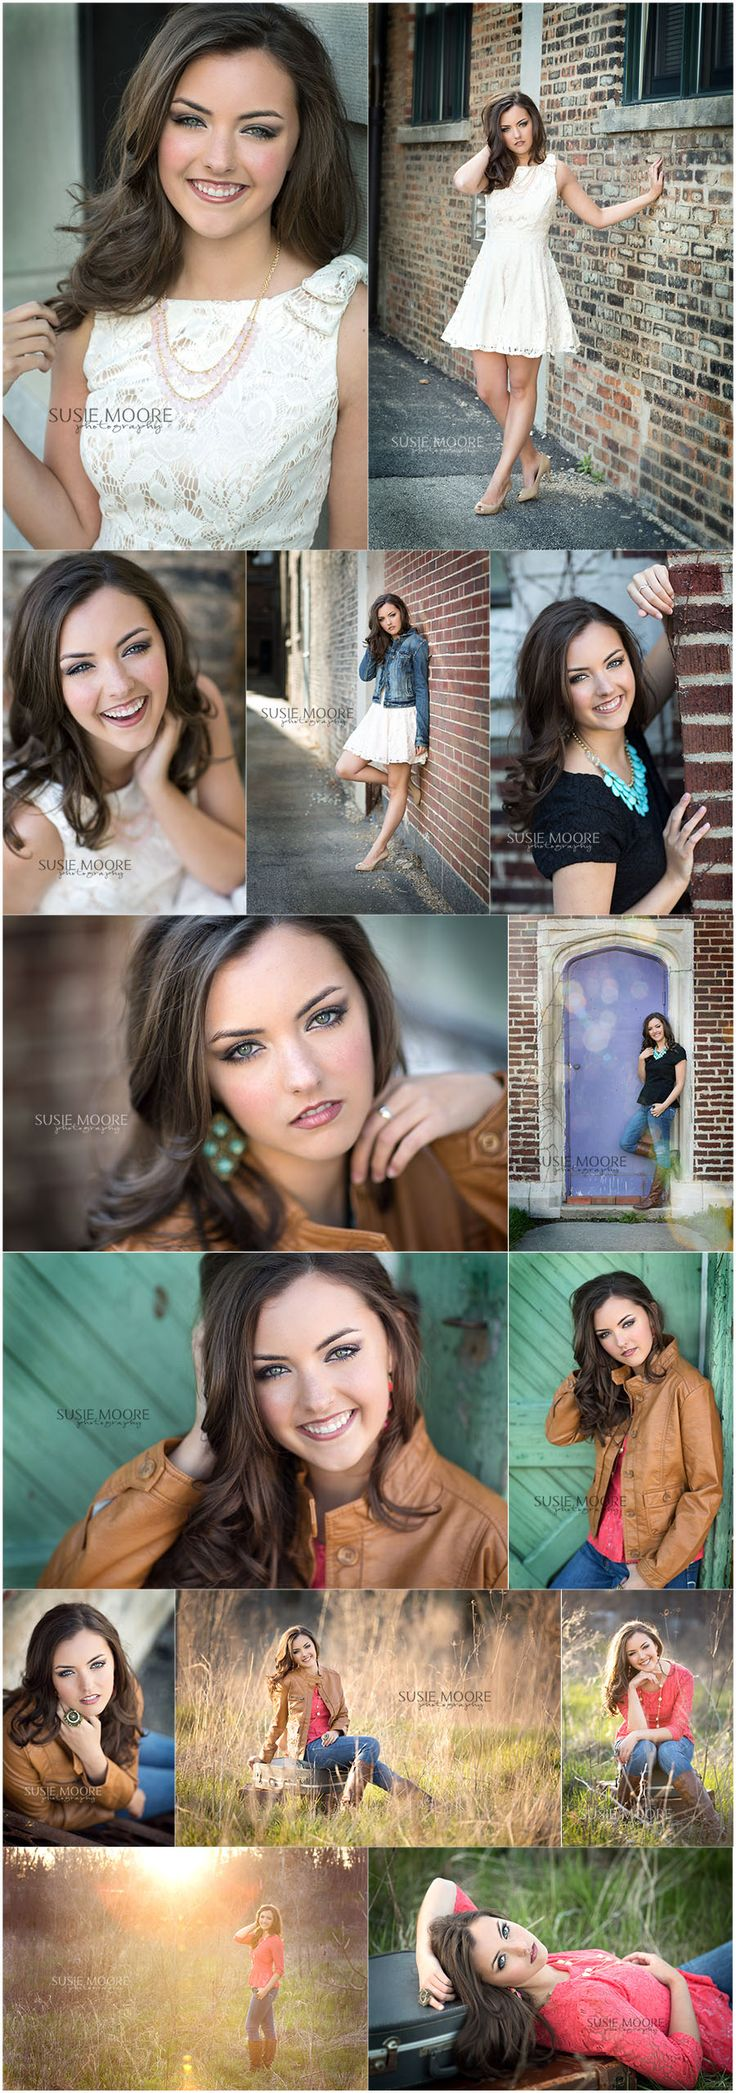 Susie Moore Photography | Illinois' and Chicago's Best Senior Photographer. Love the top ones